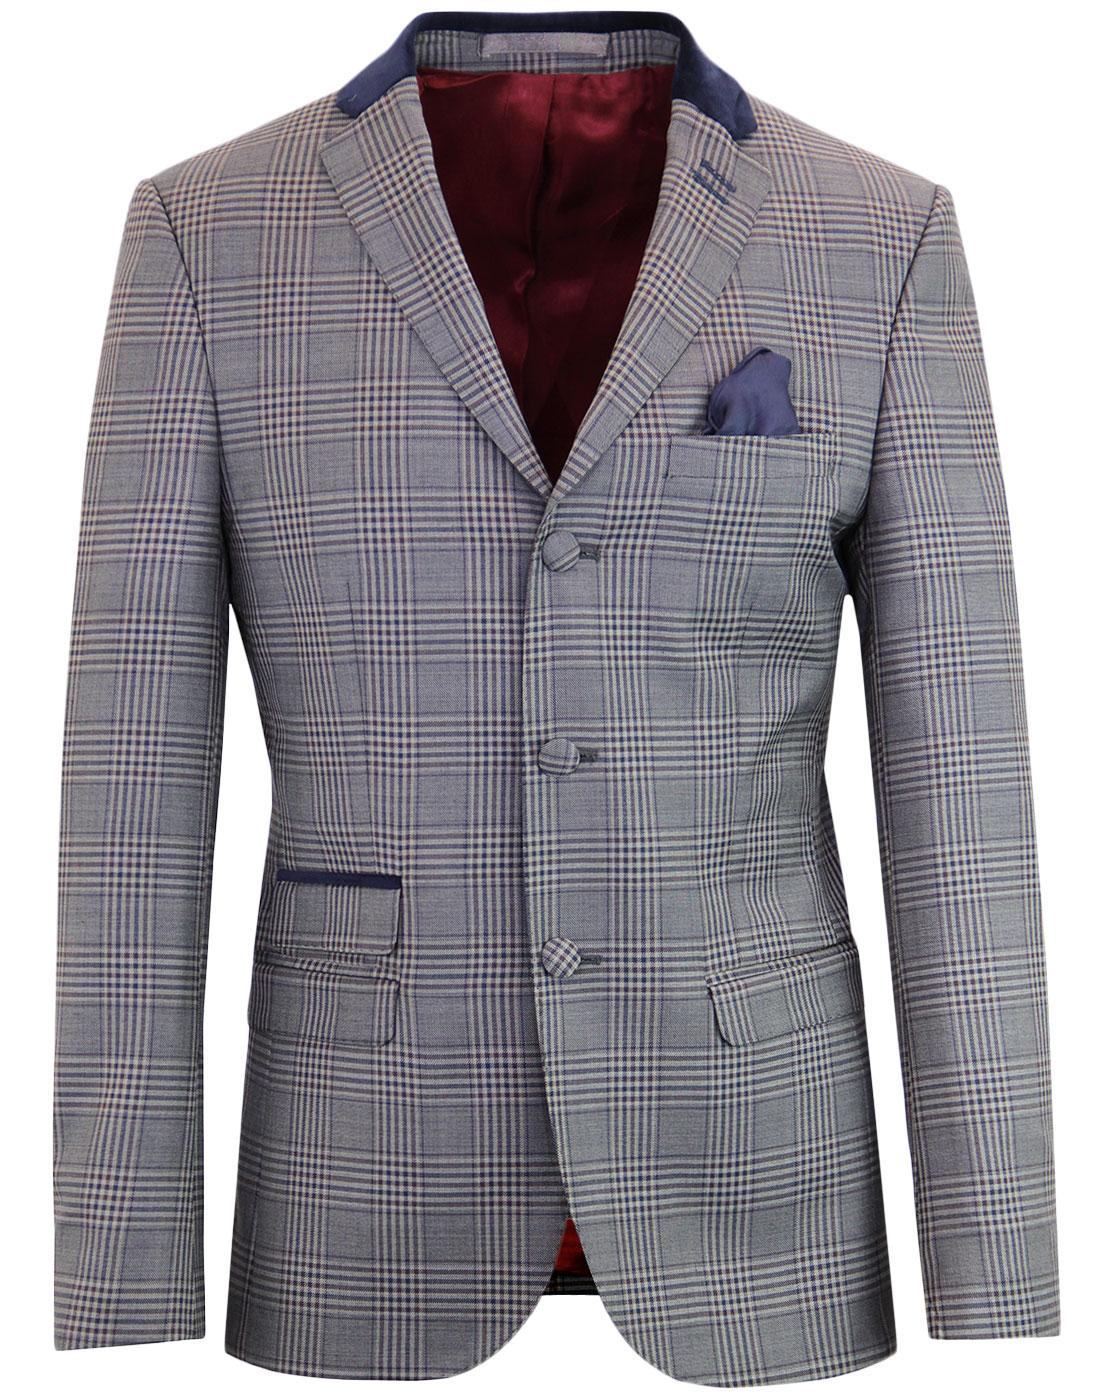 MADCAP ENGLAND POW Check Velvet Collar Suit Jacket